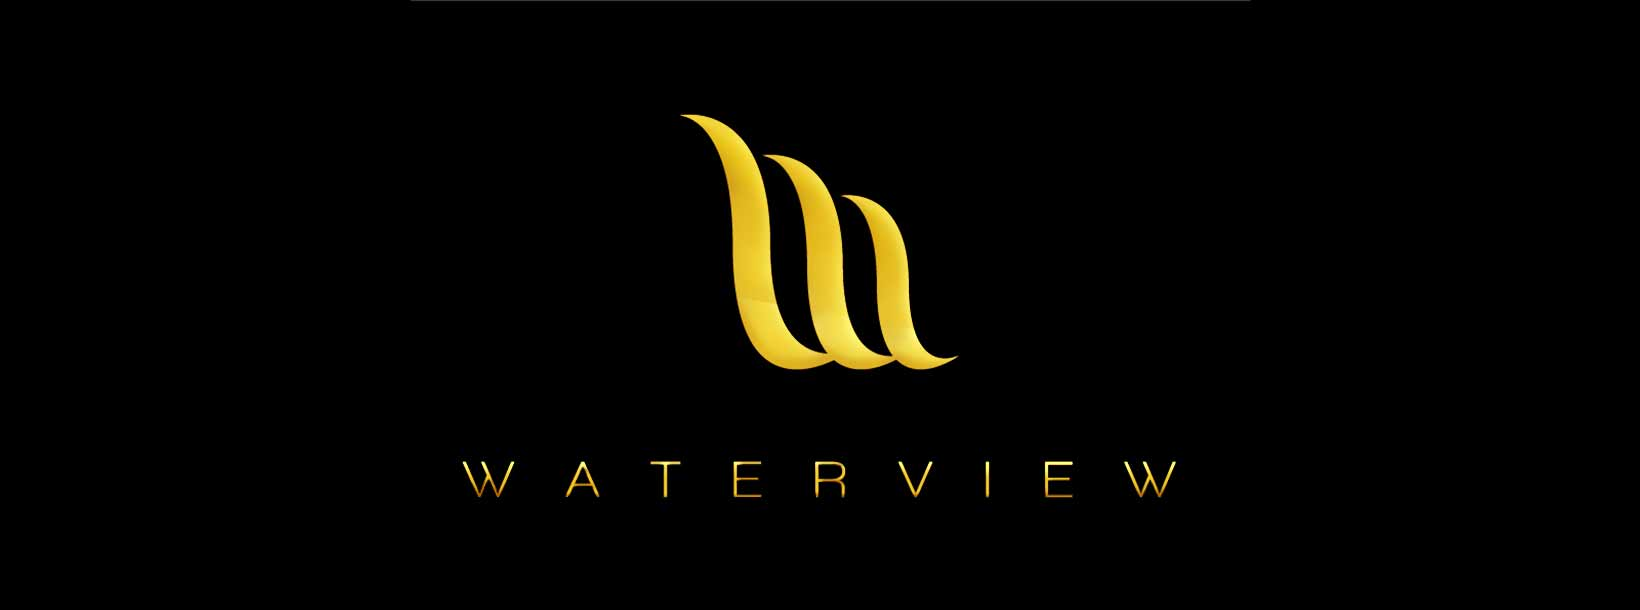 waterview-logo-design